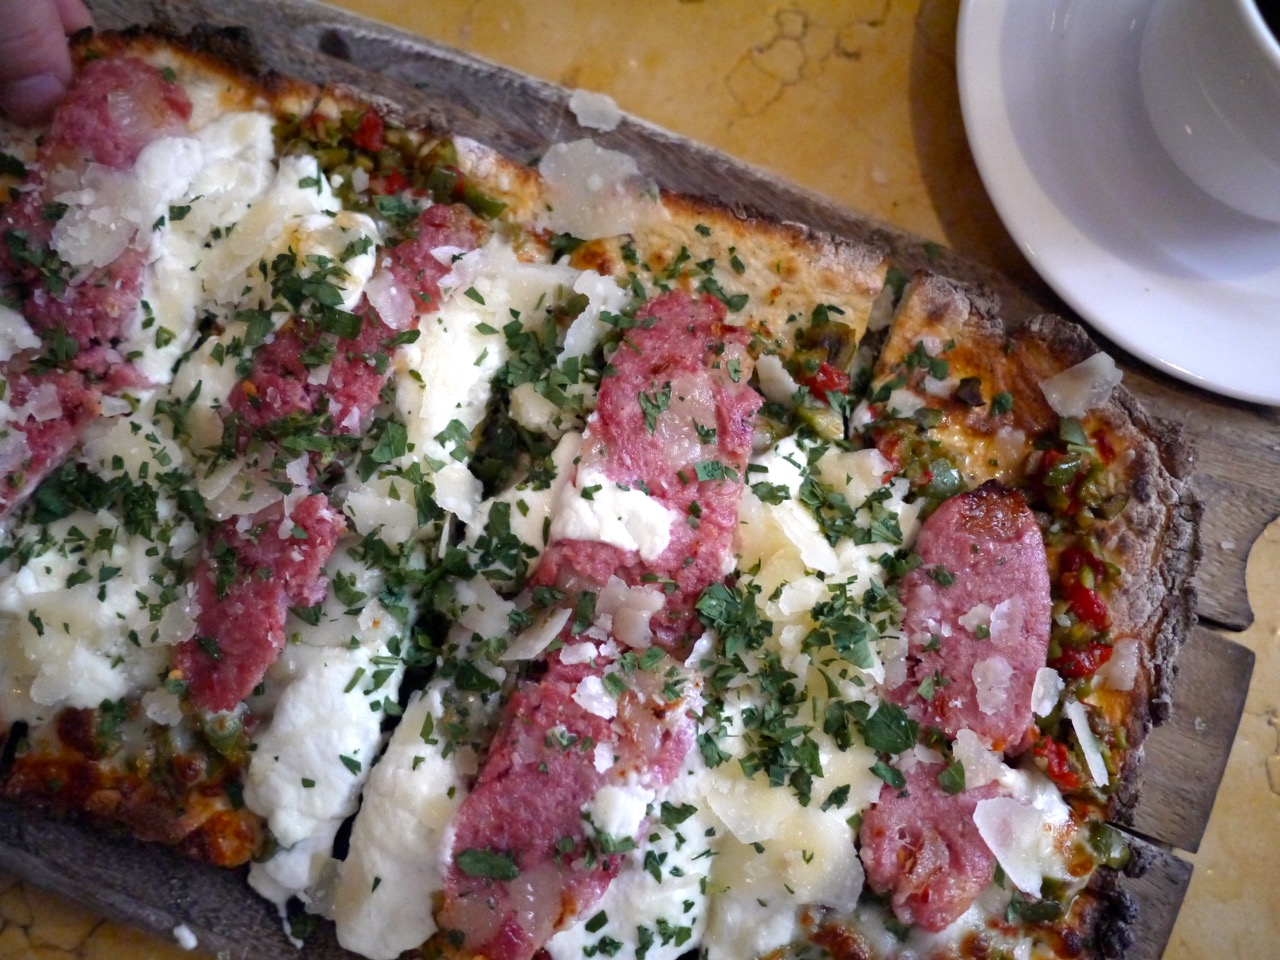 Spicy Muffaletta Flatbread Oil-Cured Soppressata, Olive Relish, Ricotta, Provolone